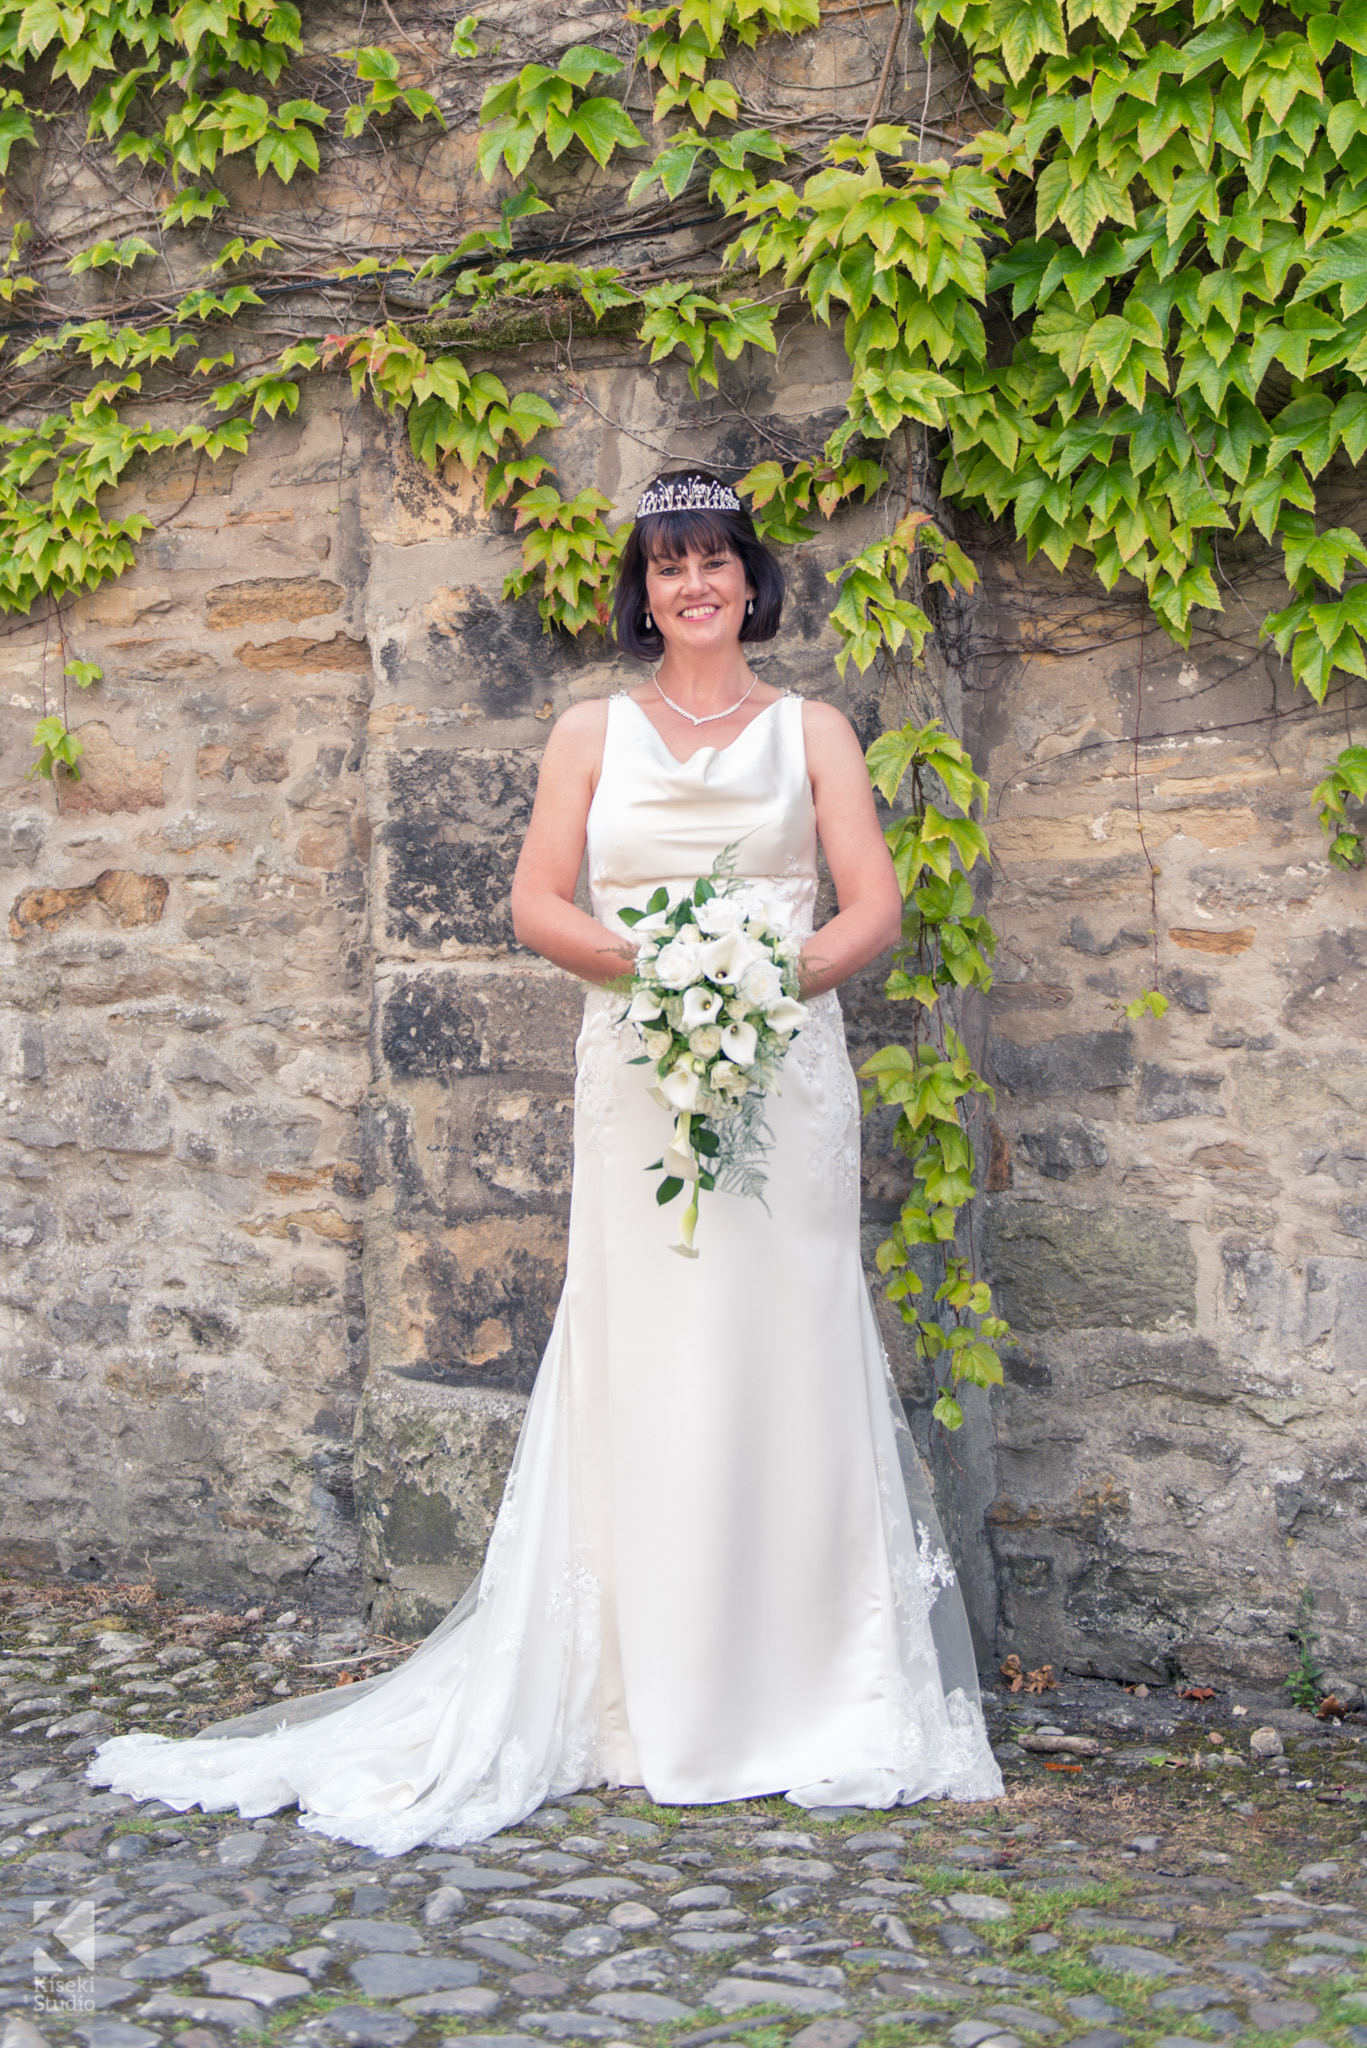 Bride standing next to ivy outside in her white dress